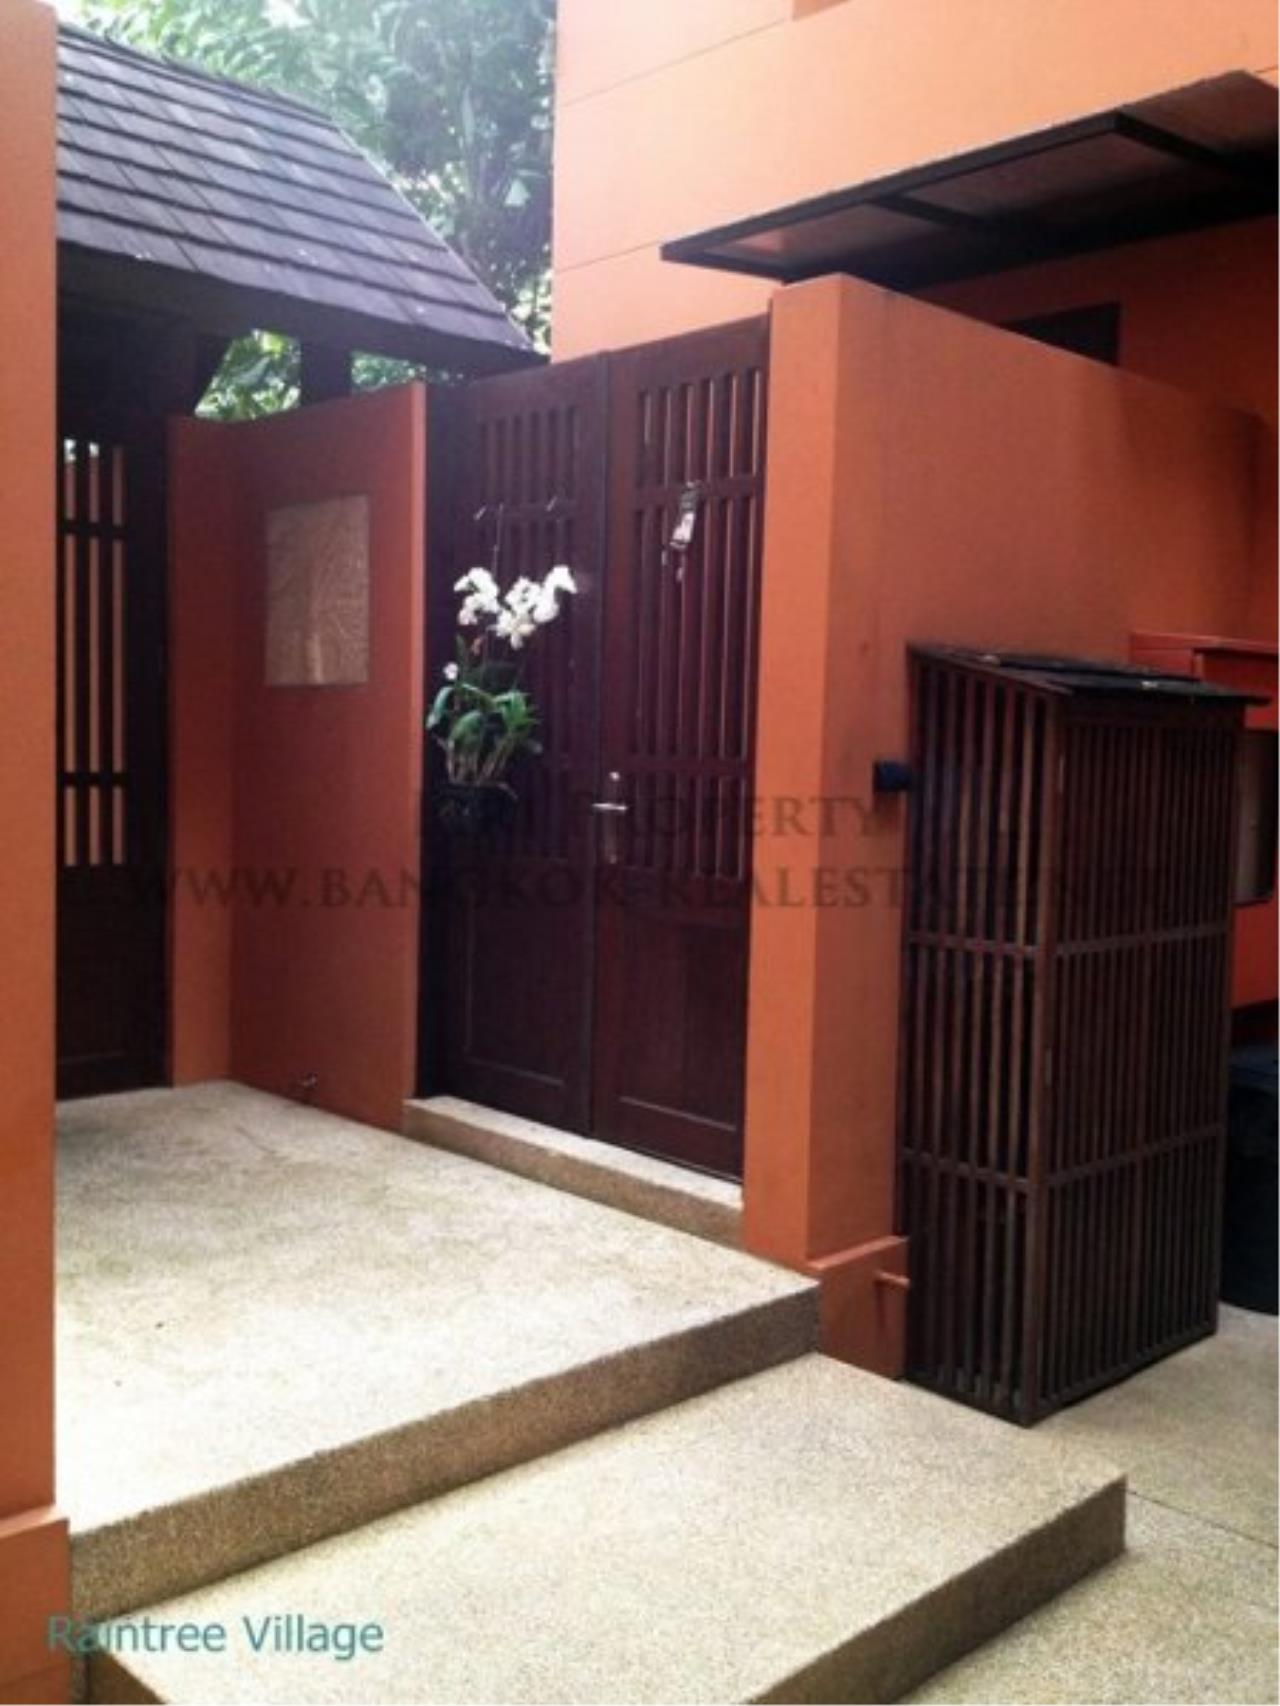 Piri Property Agency's Townhouse Apartment nearby Emporium for Rent - 3 plus 1 Bedroom 8